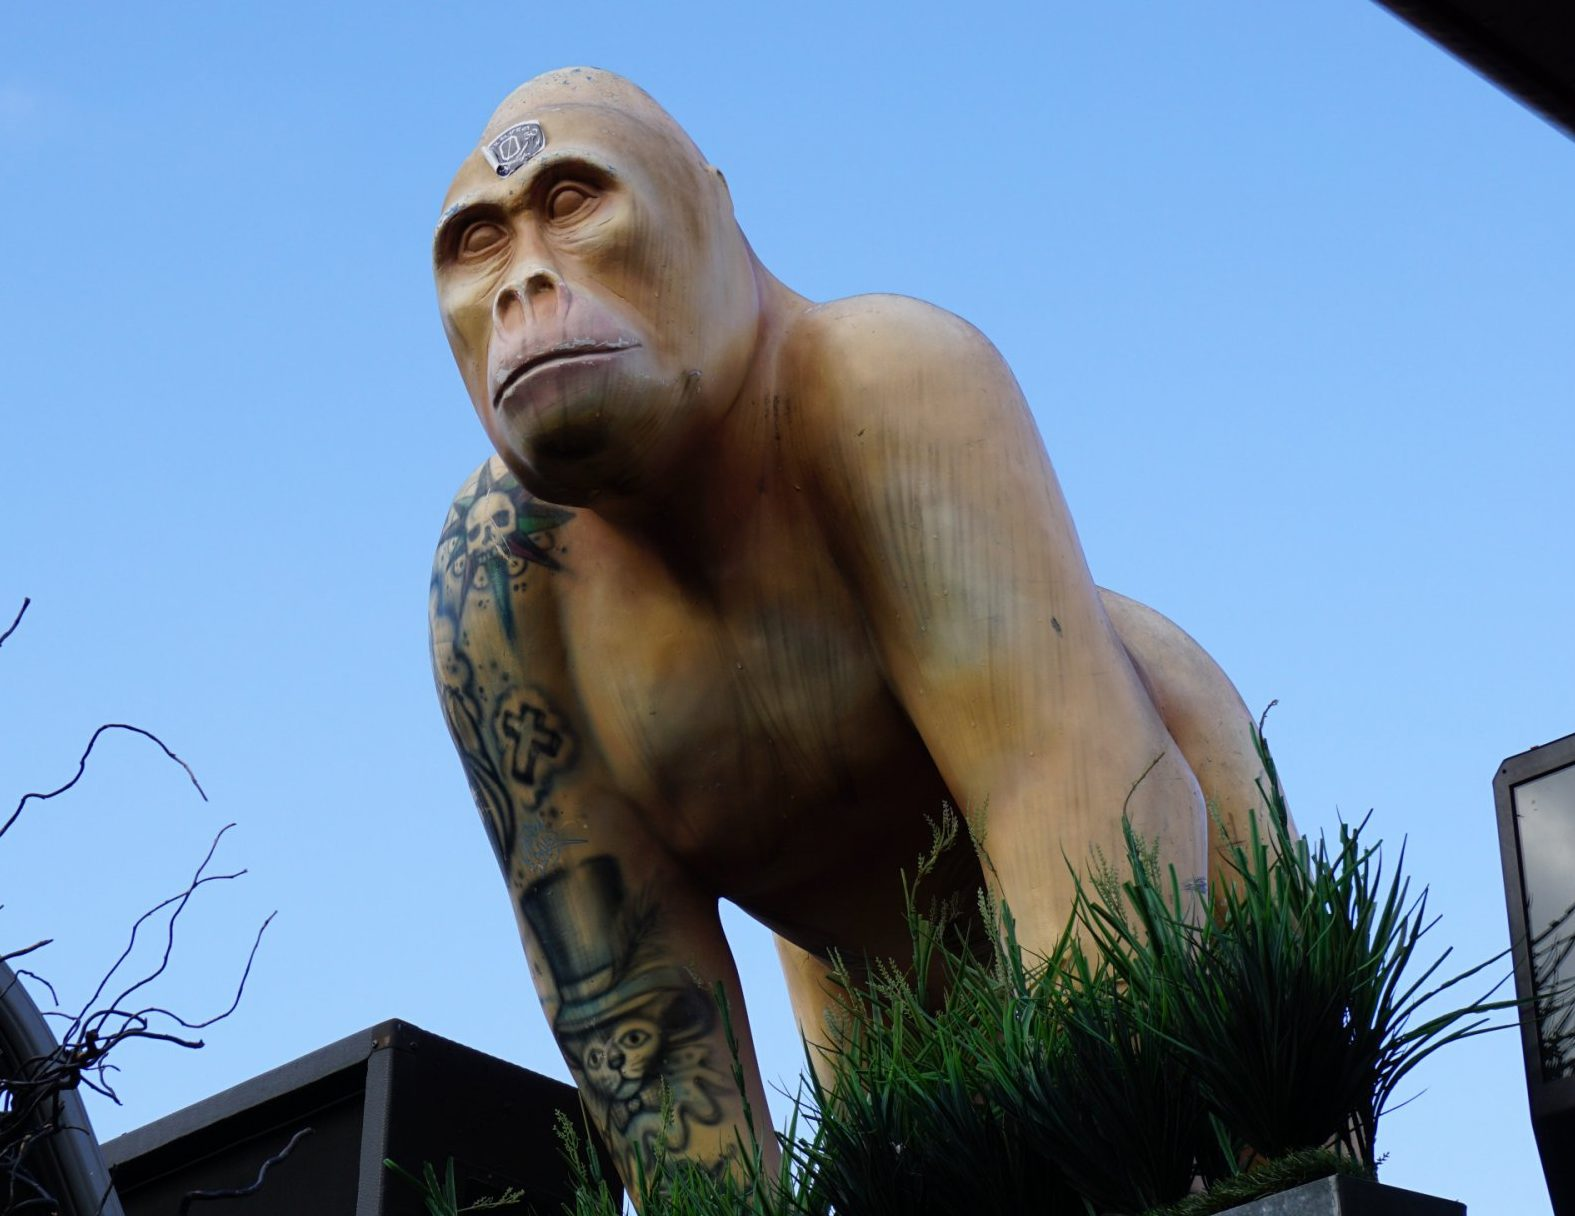 Stolen gorilla statue Ace.Last seen 8 November on the roof terrace of The Karma Sanctum Soho Hotel in London.